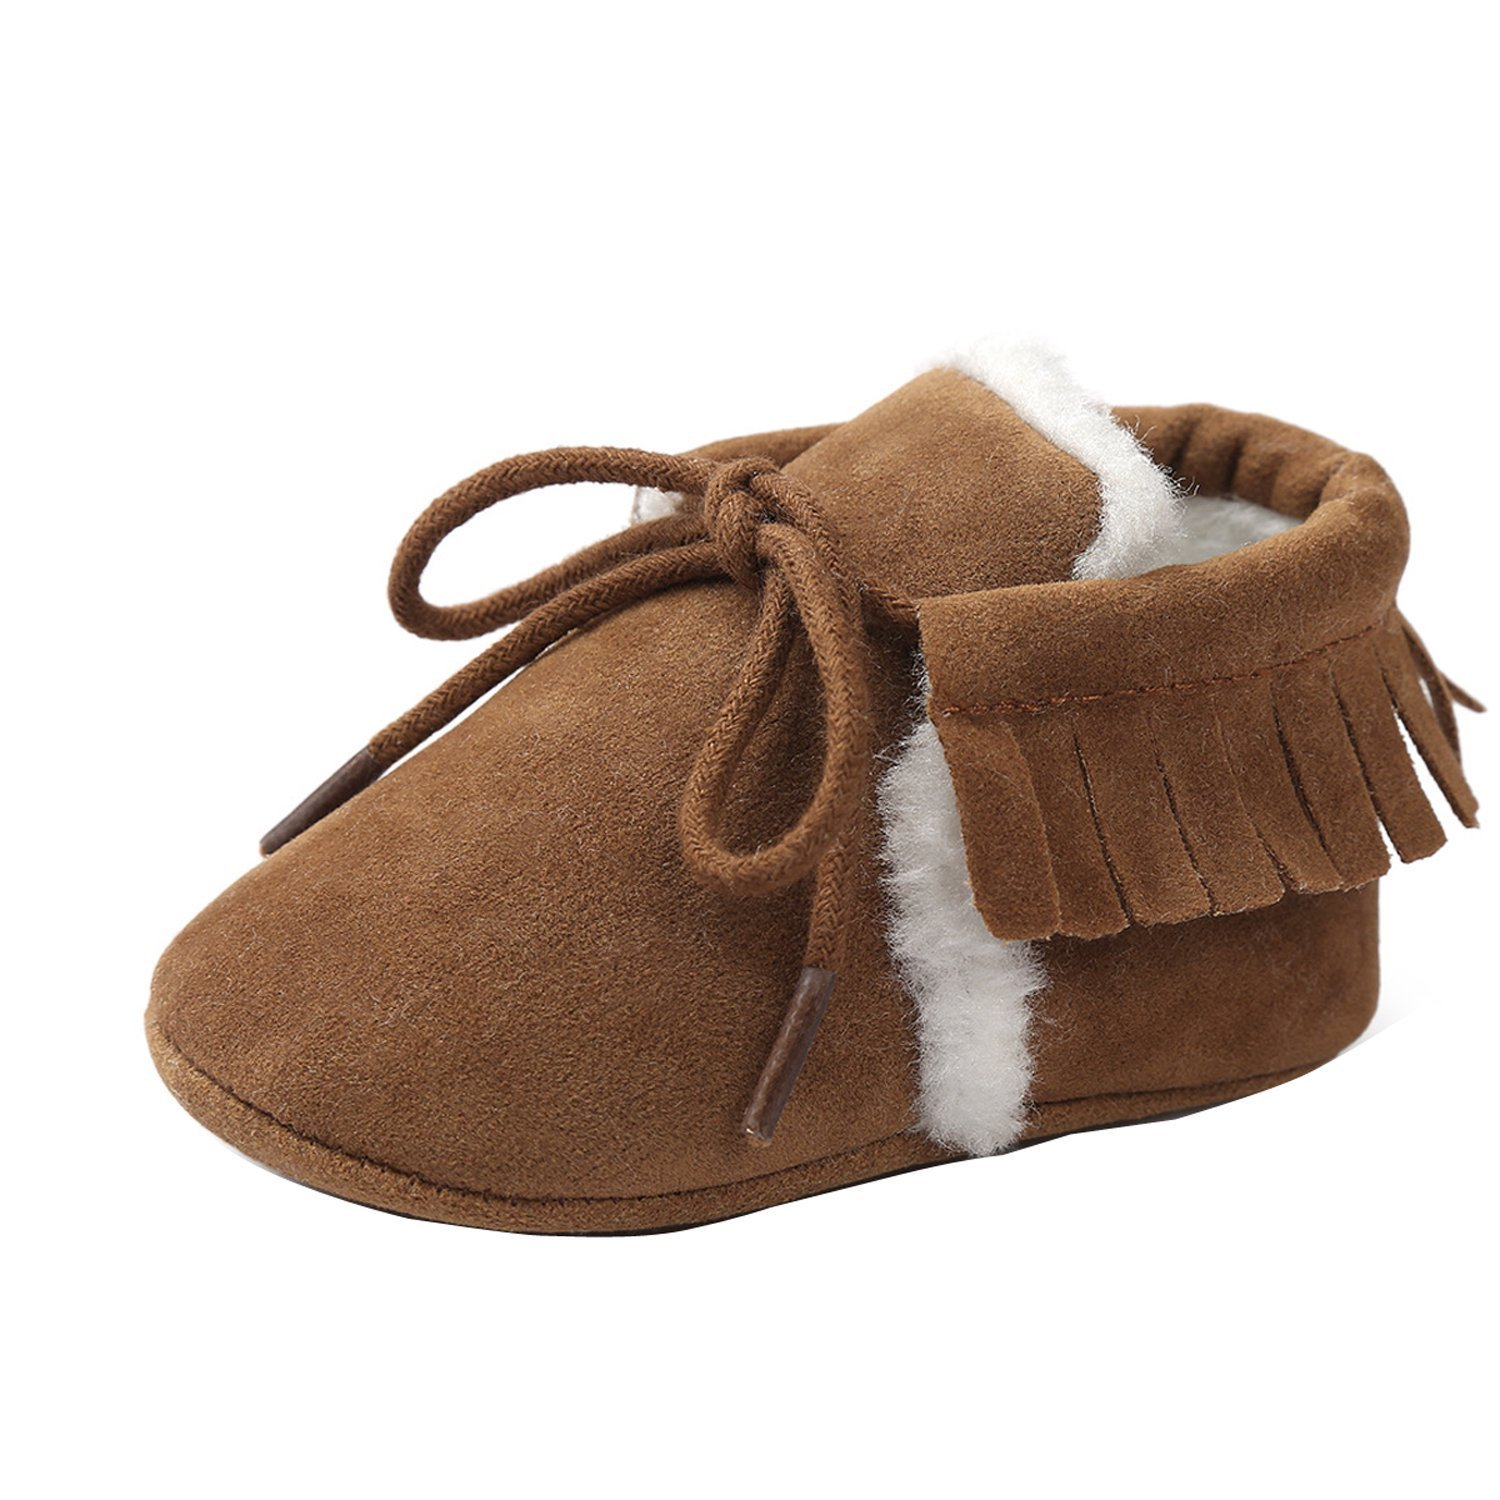 NOT100 Baby Infant Lace-up Sneakers Fur Lined Rubber Sole Faux Leather Child Snow Boots